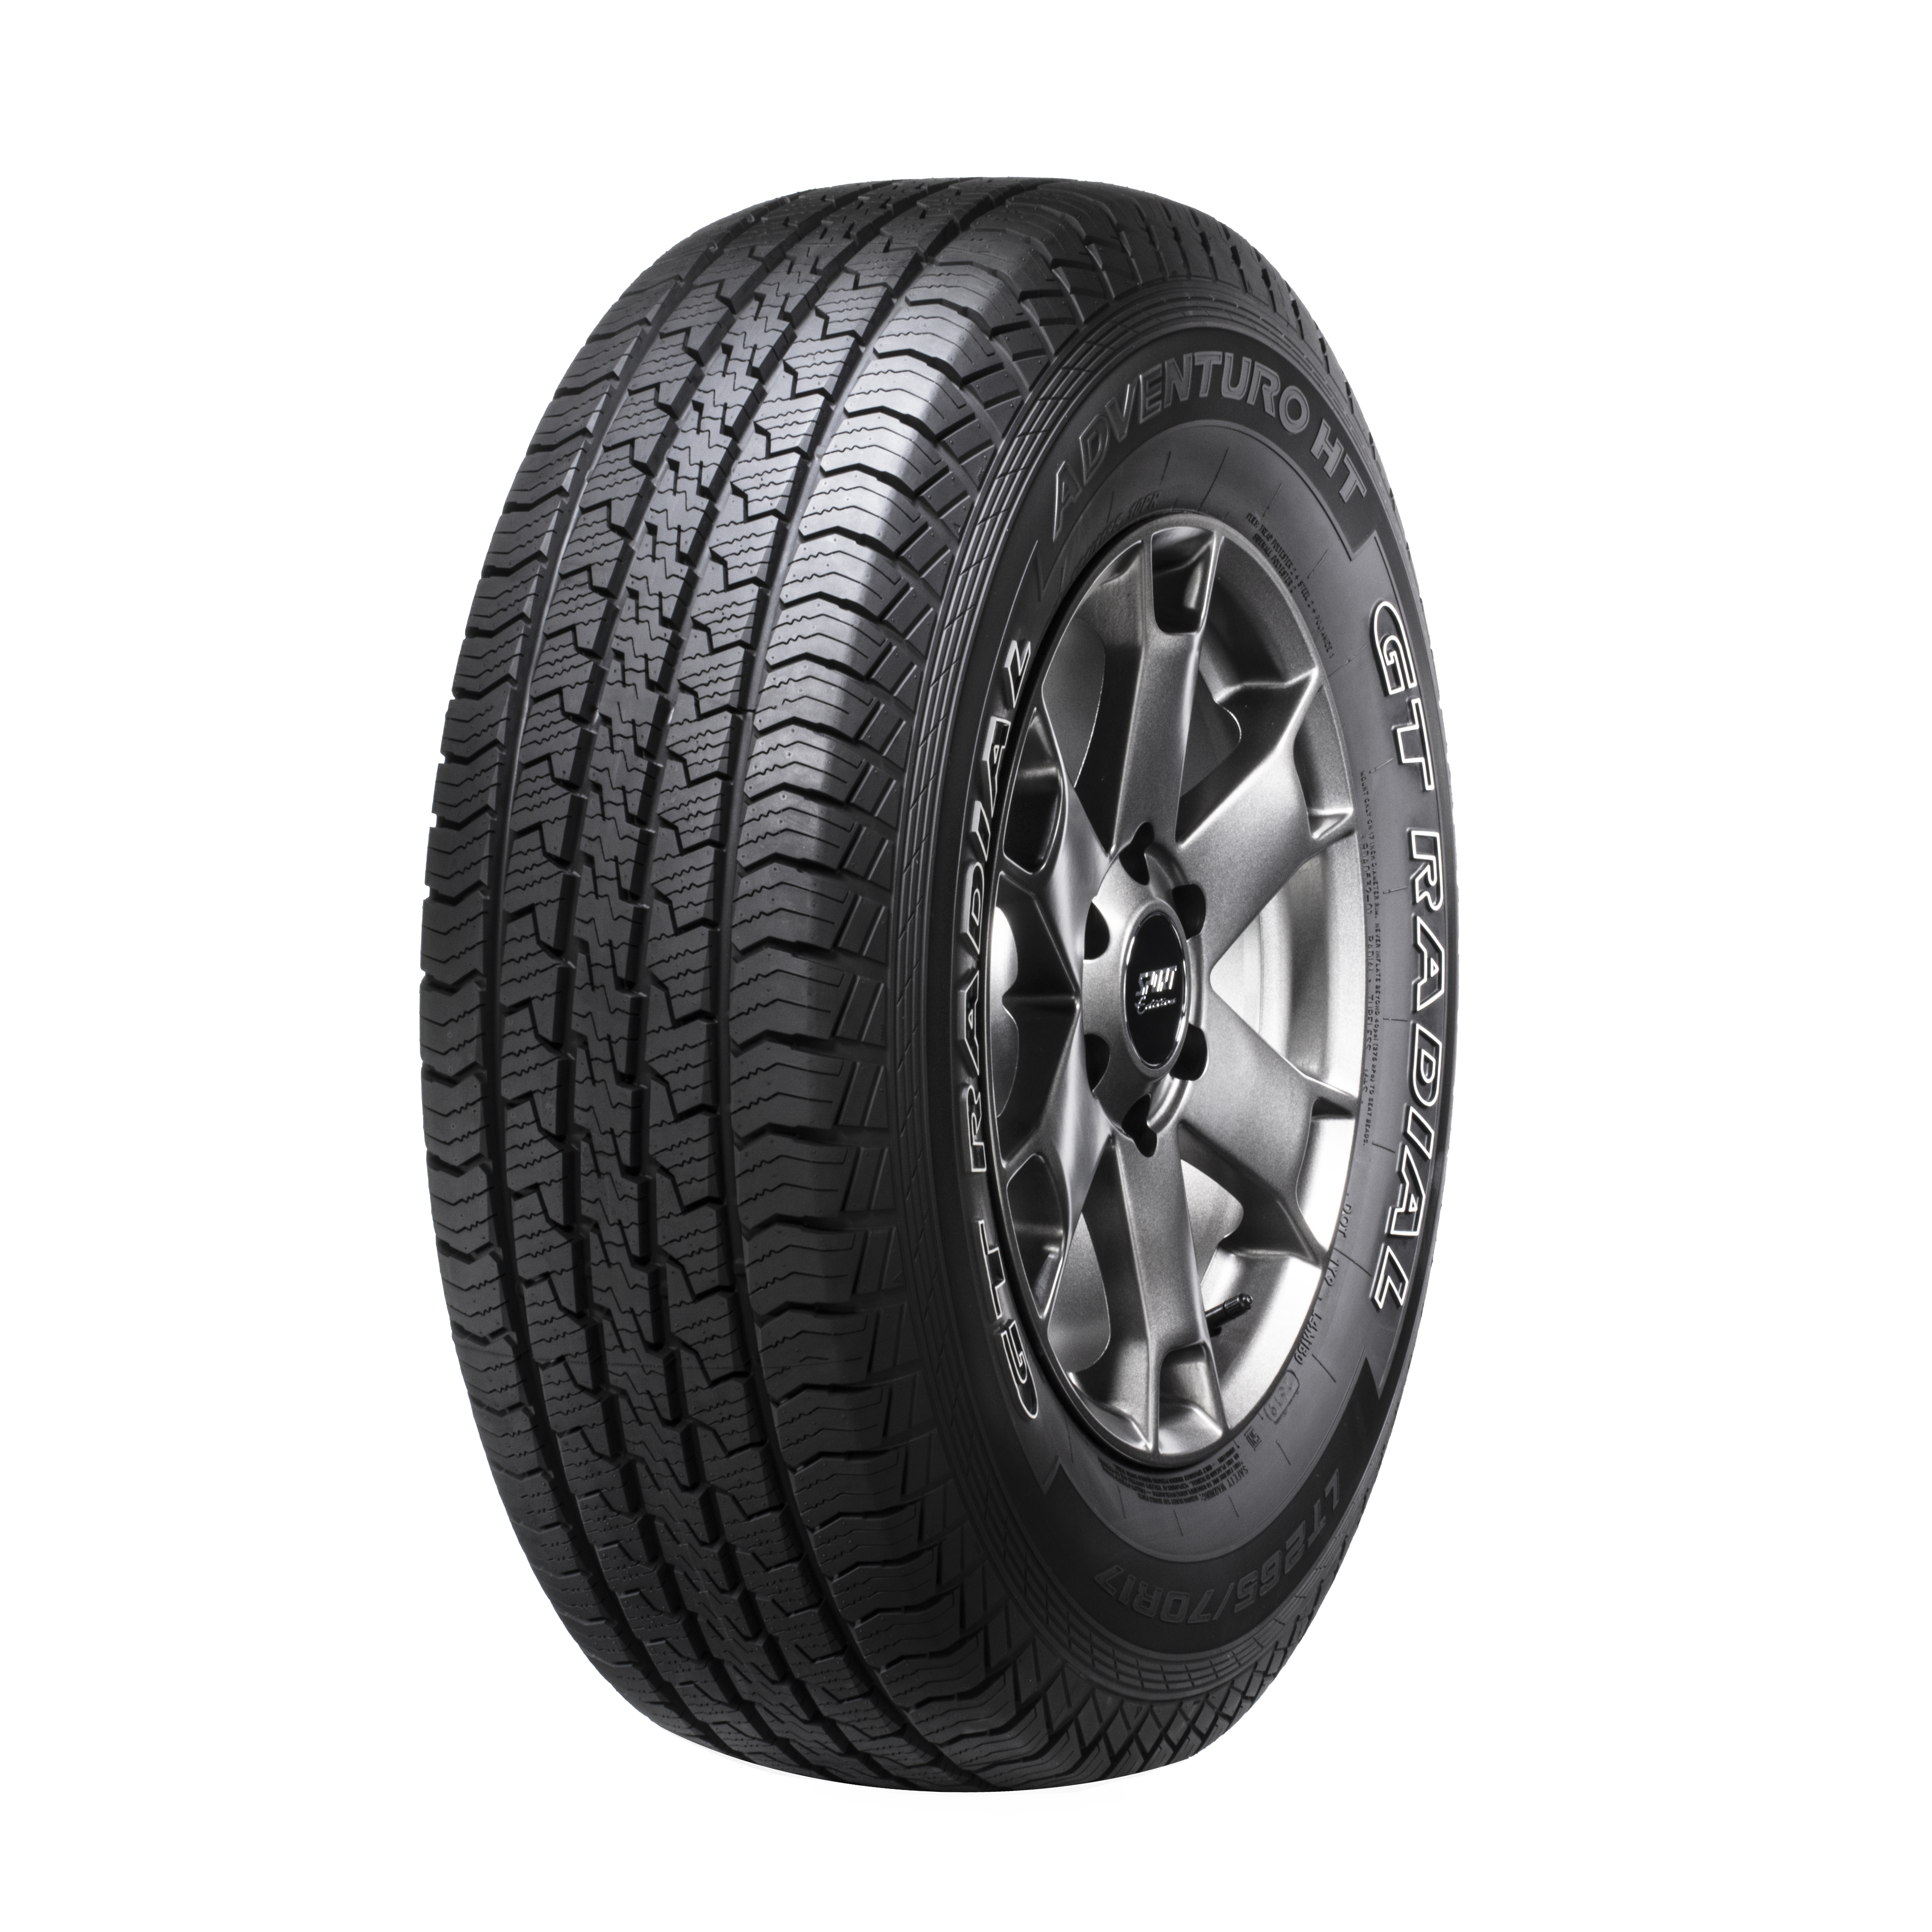 Giti Targets SUV, Pickup Owners with New All-Season Tire